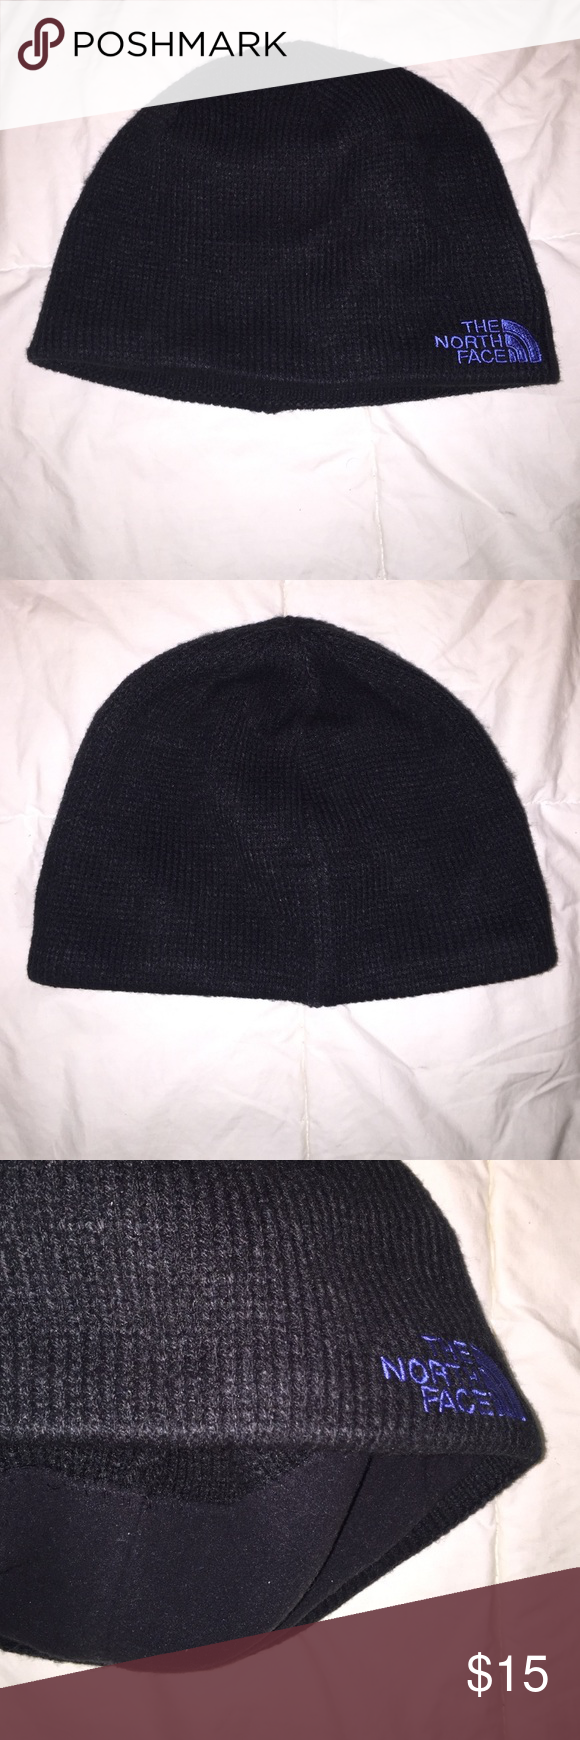 Northface knit beanie Black Northface knit beanie with blue logo. Super warm and comfortable, gently worn with no detectable flaws. North Face Accessories Hats